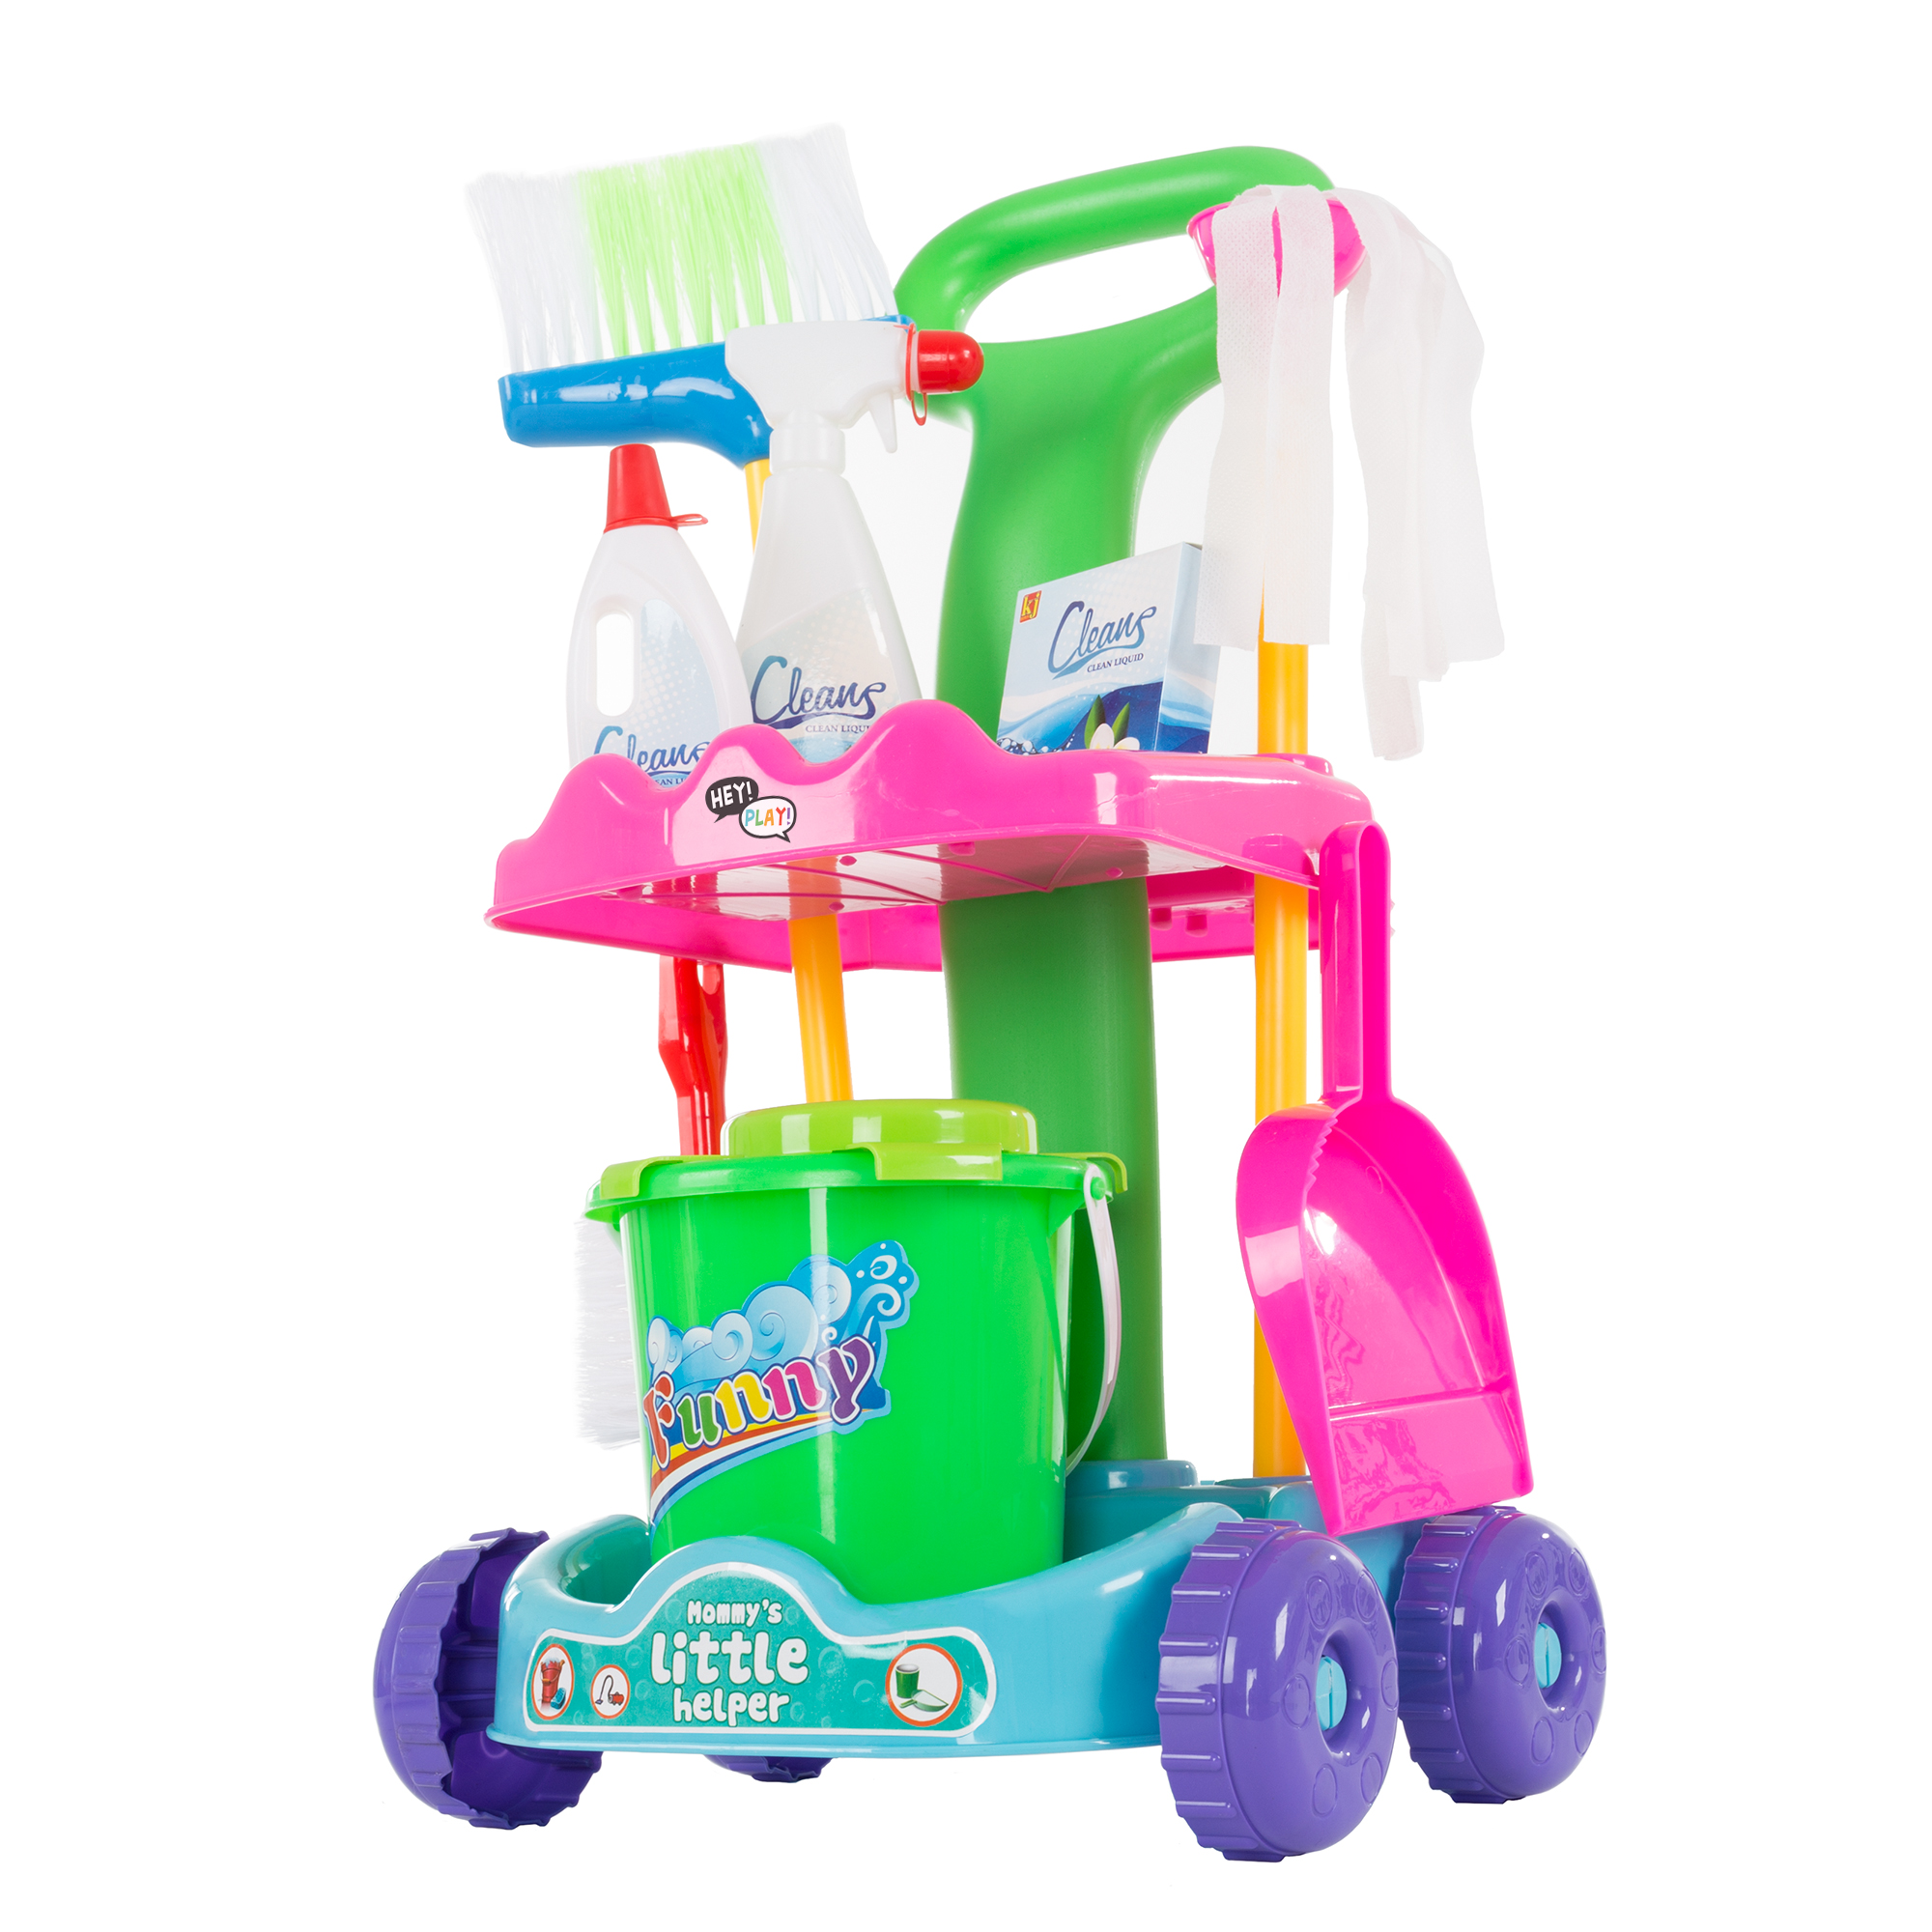 Pretend Play Cleaning Set with Caddy on Wheels by Hey! Play!